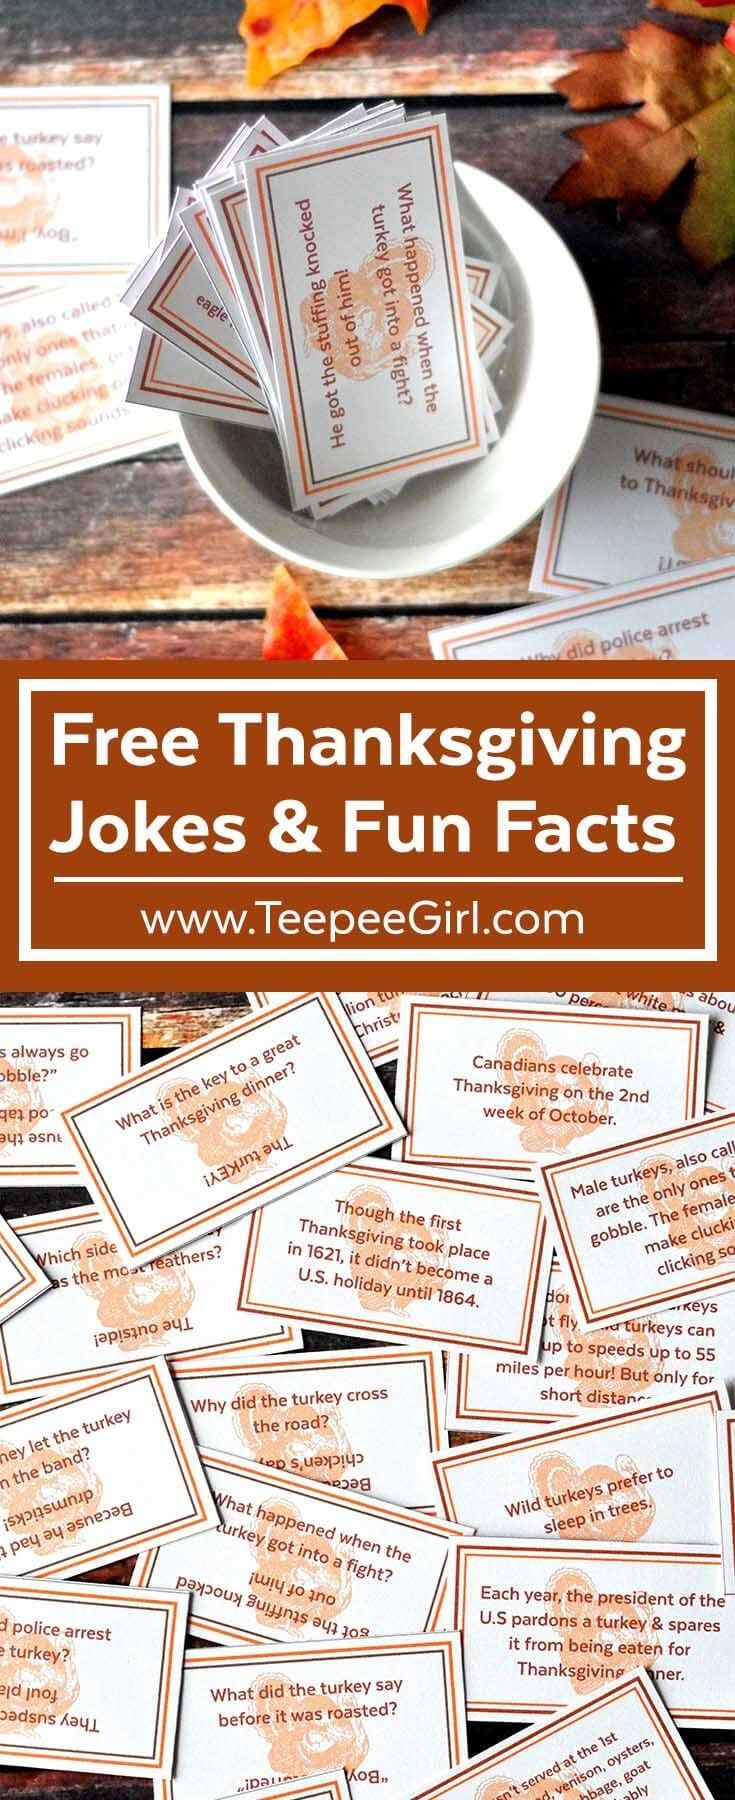 Use these free Thanksgiving Joke/Fun Fact cards to decorate tables, use as lunch box notes, Thanksgiving party decor, or just for fun! www.TeepeeGirl.com